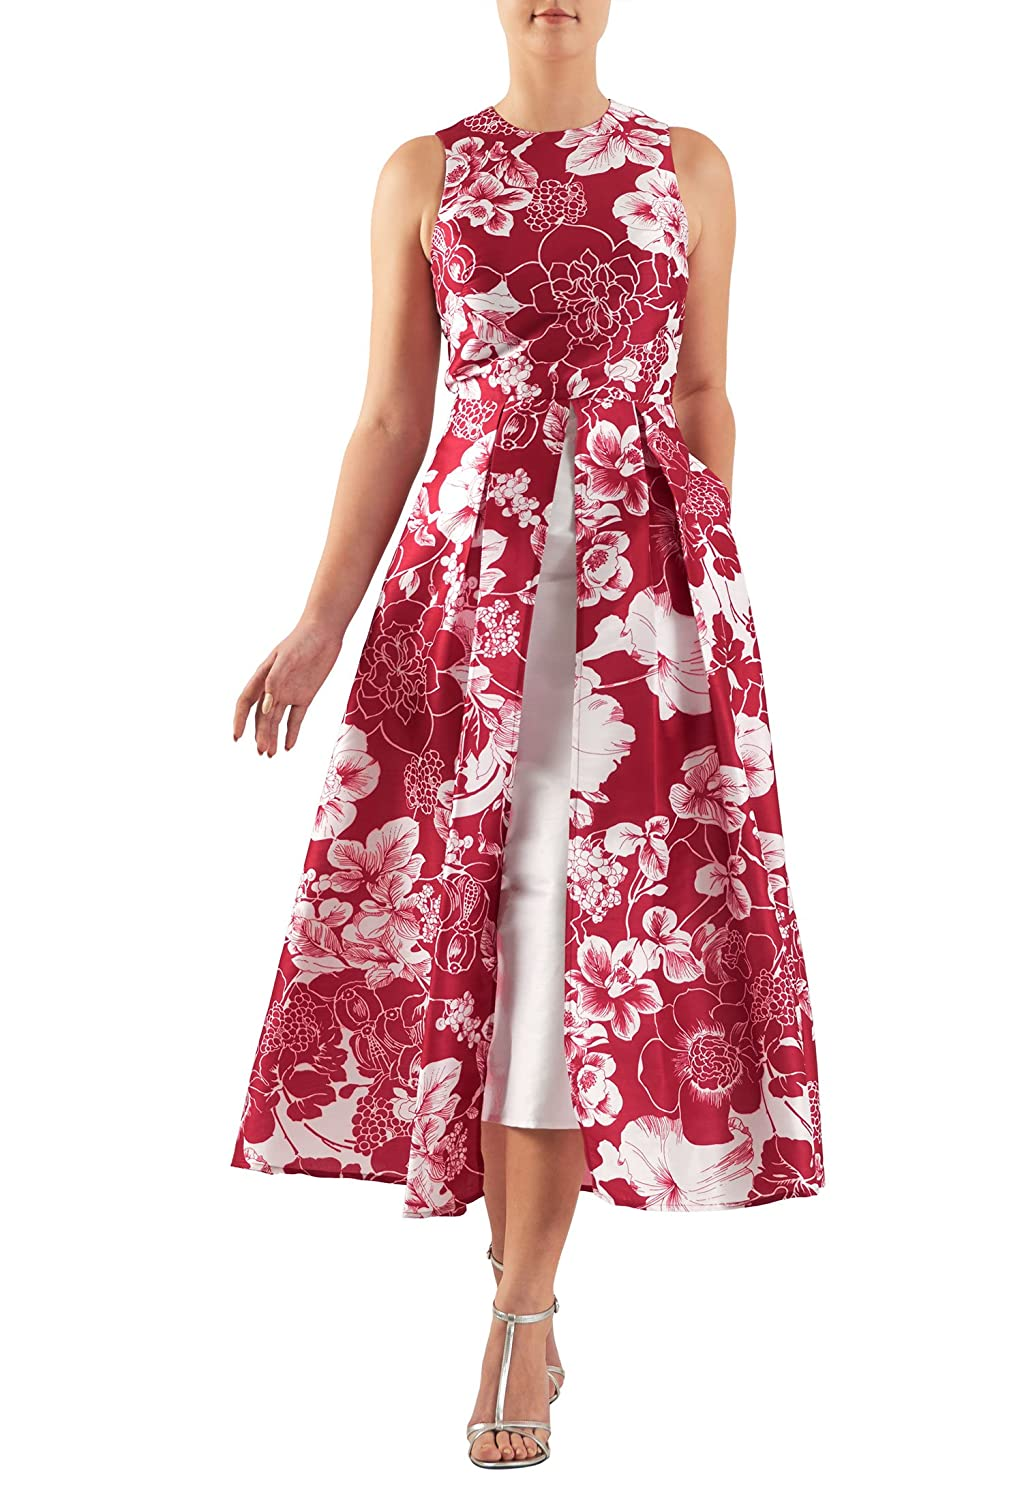 1940s Pinup Dresses for Sale Hostess- Floral print dupioni inset front dress $66.95 AT vintagedancer.com